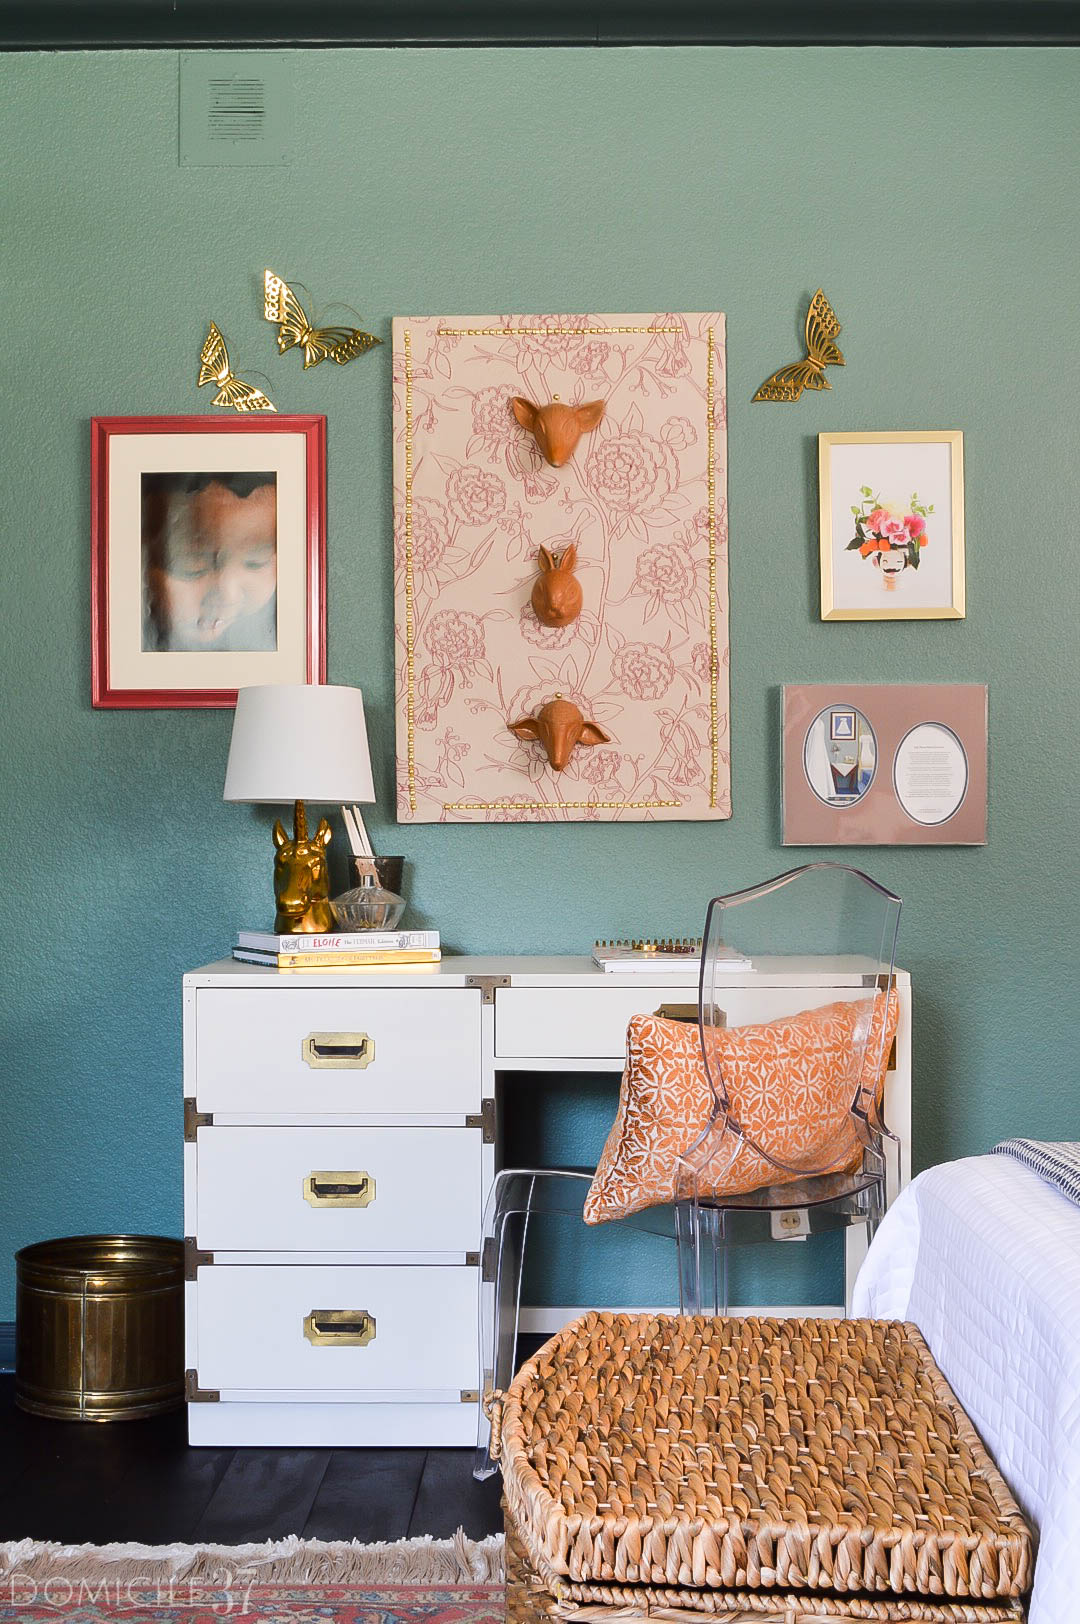 Domicile 37 Home Tour- Vintage Eclectic Southern Ranch Home